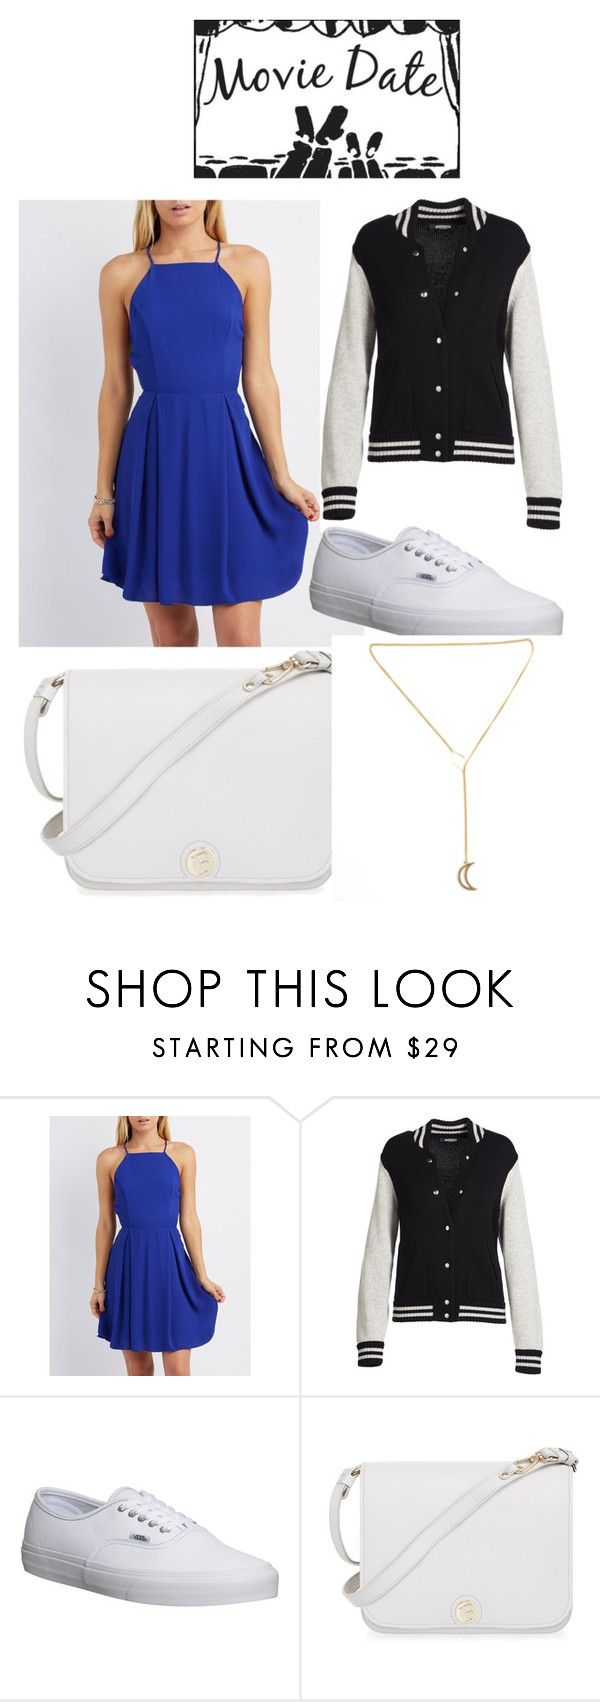 """Movie Date outfit pt.2"" by jsd13711 on Polyvore featuring Charlotte Russe, Marc Jacobs, Vans and Furla"